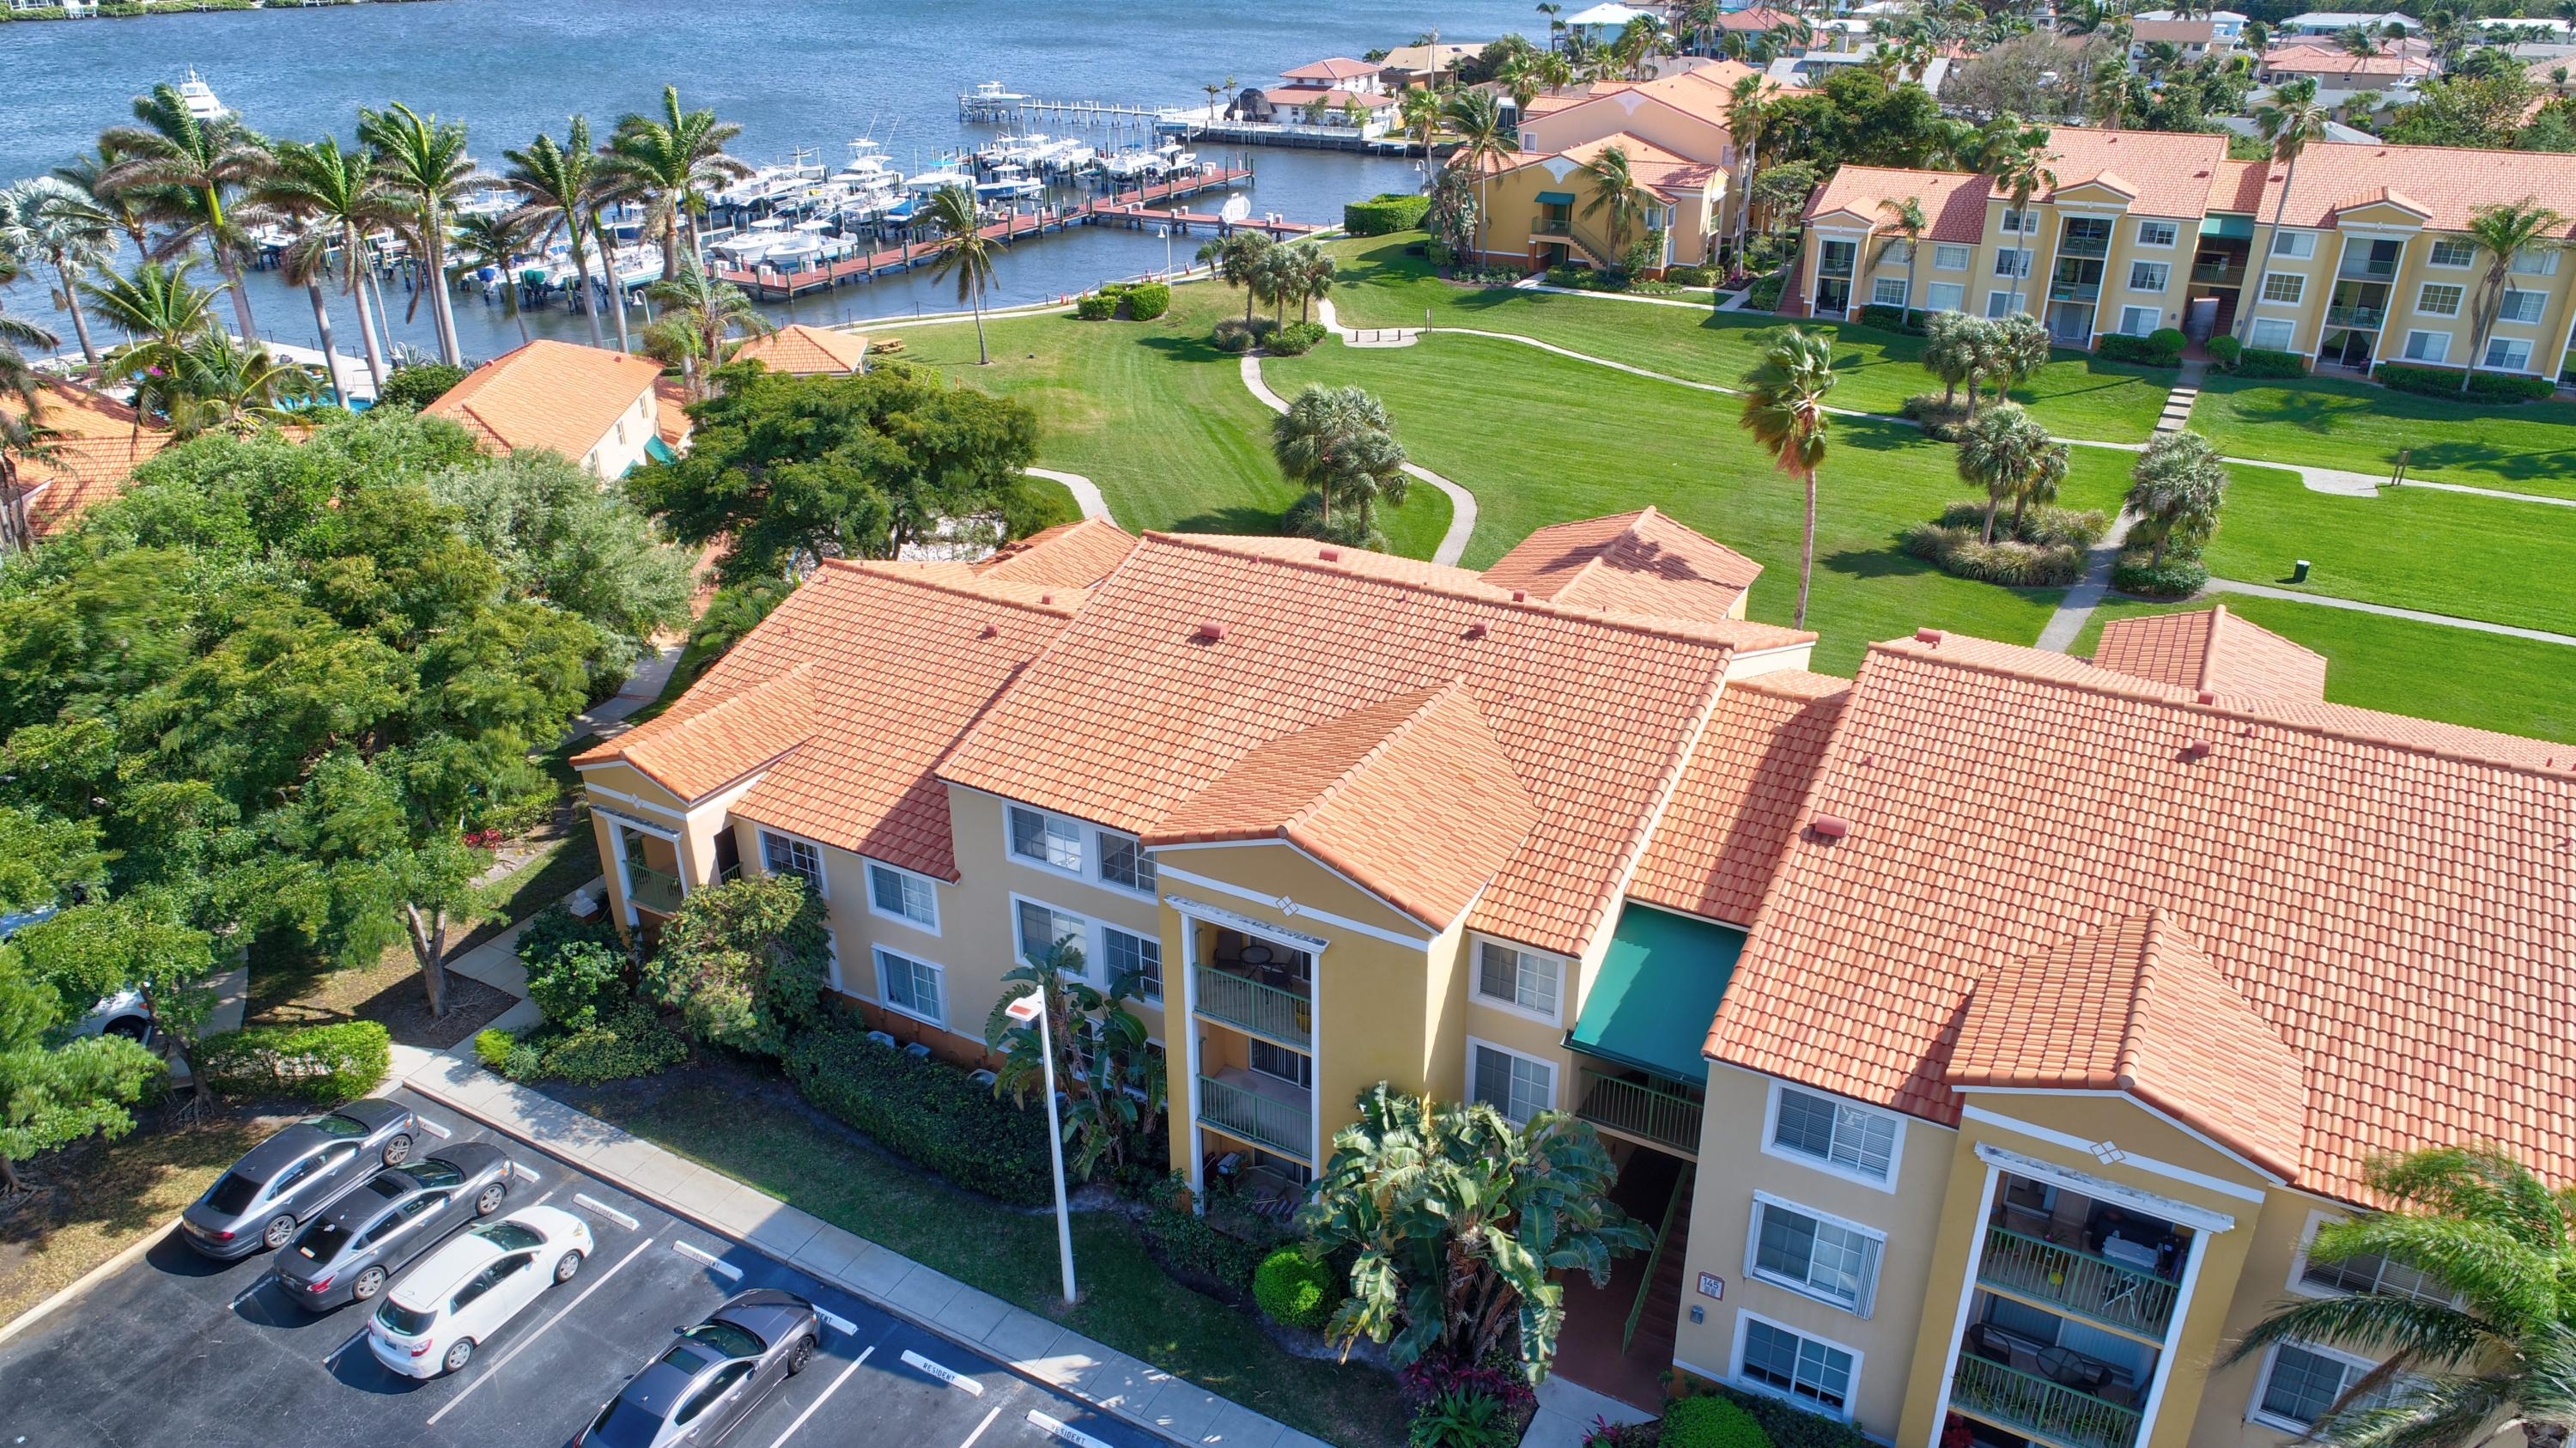 145 Yacht Club Way 304 Hypoluxo, FL 33462 photo 1